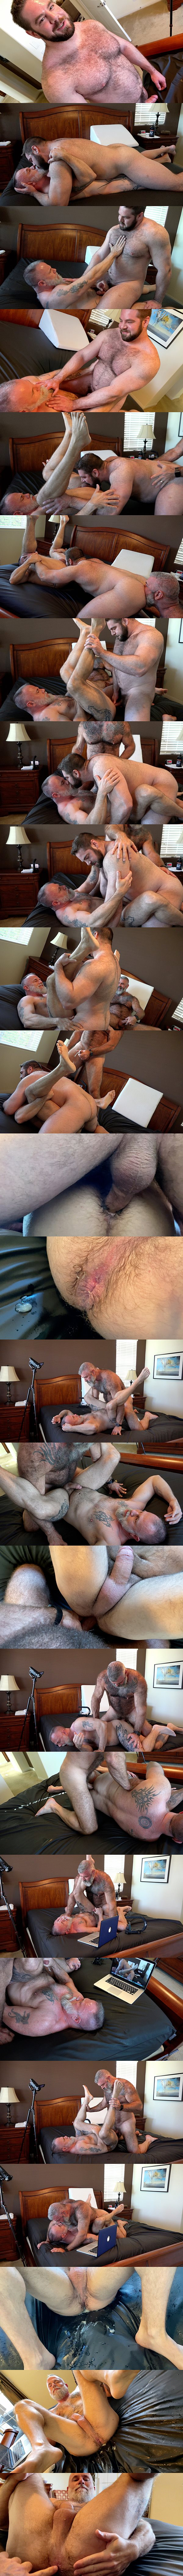 Hot hairy muscle bear Teddy Hunter and Will Angell bareback inked daddy Liam Angell before they creampie and fuck the cum out of Liam in Roid Load at Musclebearporn 01